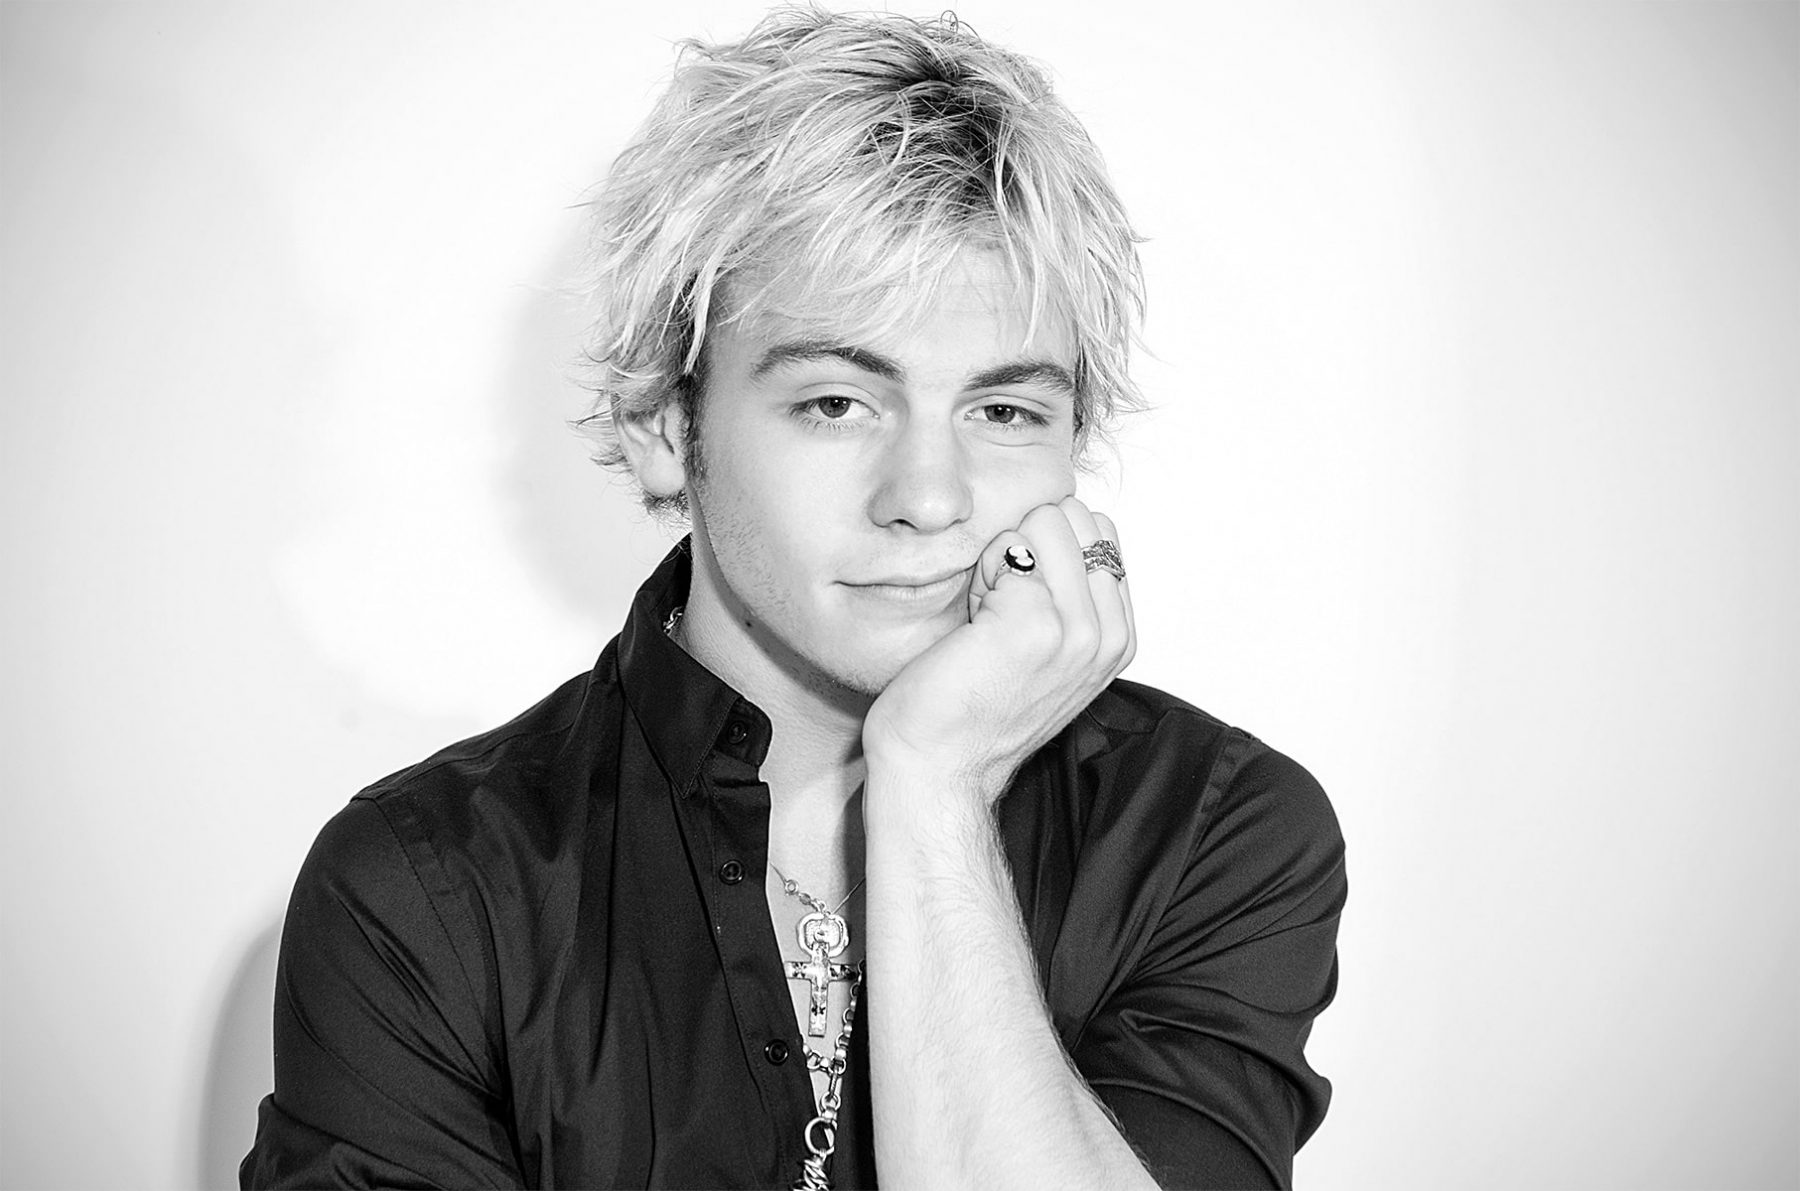 What is ross lynch doing now